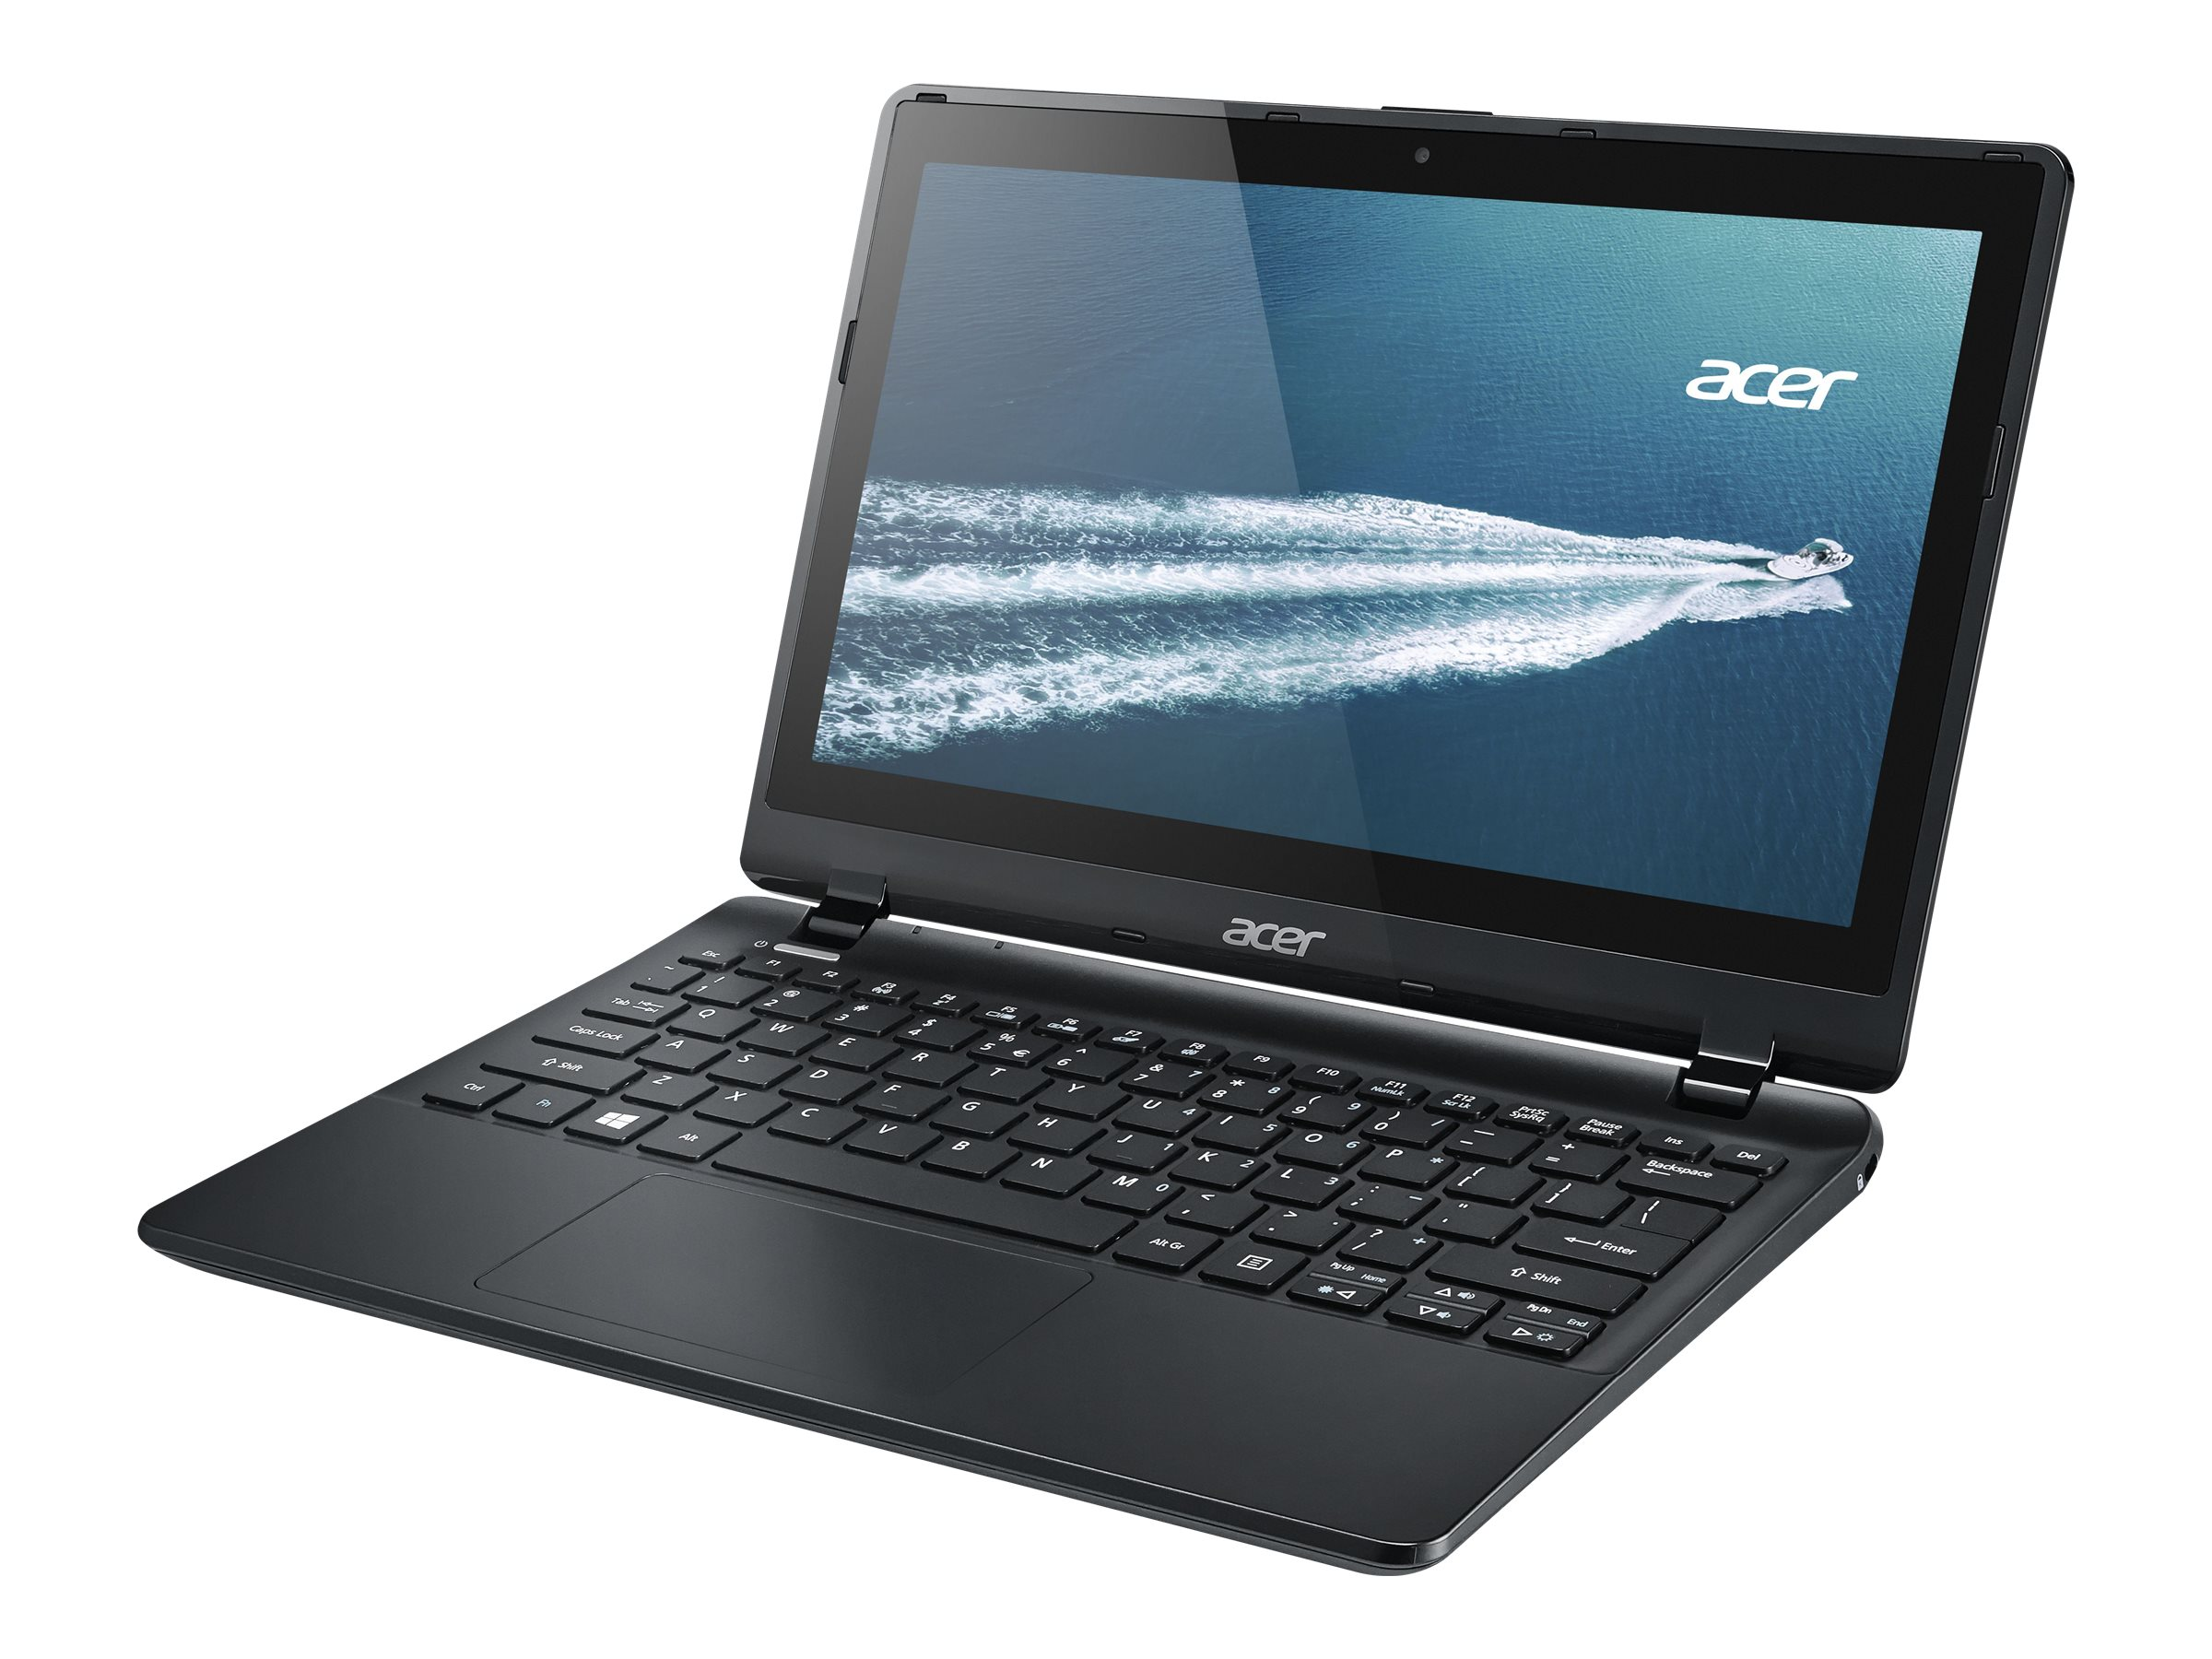 Scratch & Dent Acer TravelMate B115-MP-C23C Celeron N2940 1.83GHz 4GB 500GB abgn GNIC BT WC 11.6 HD MT W8 1-64, NX.VA2AA.003, 30693493, Notebooks